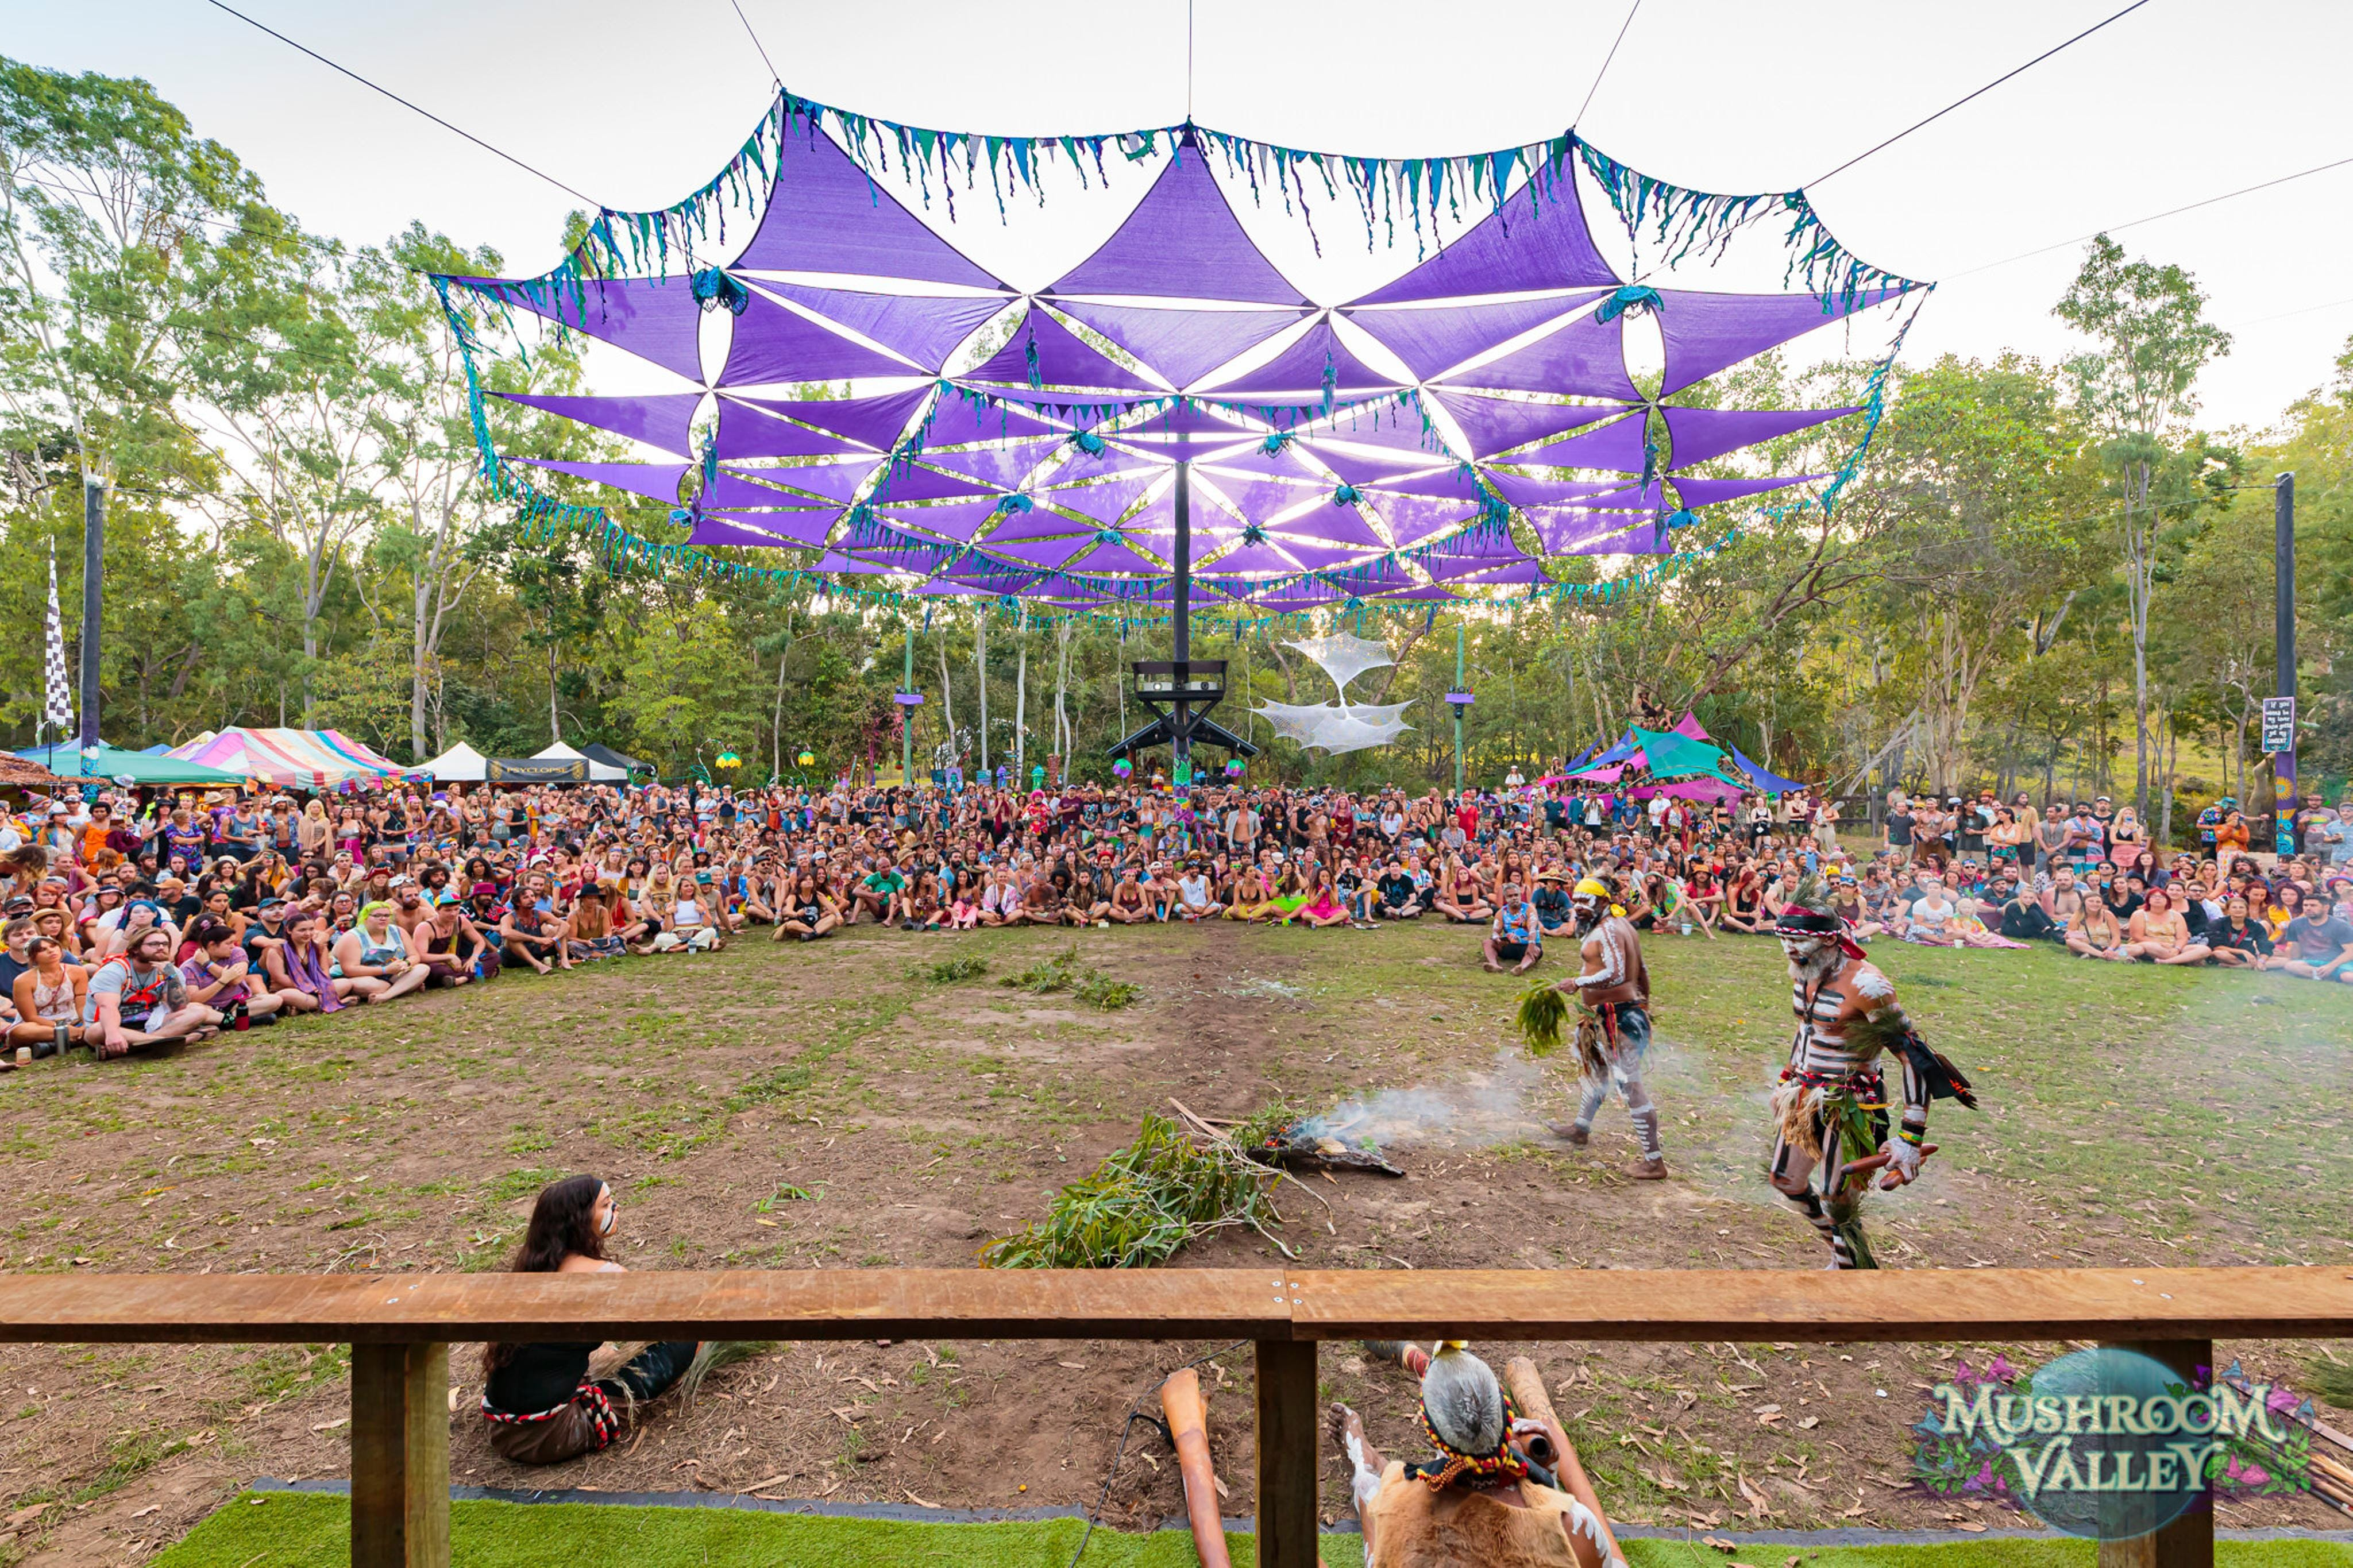 Mushroom Valley Festival - Tourism Gold Coast